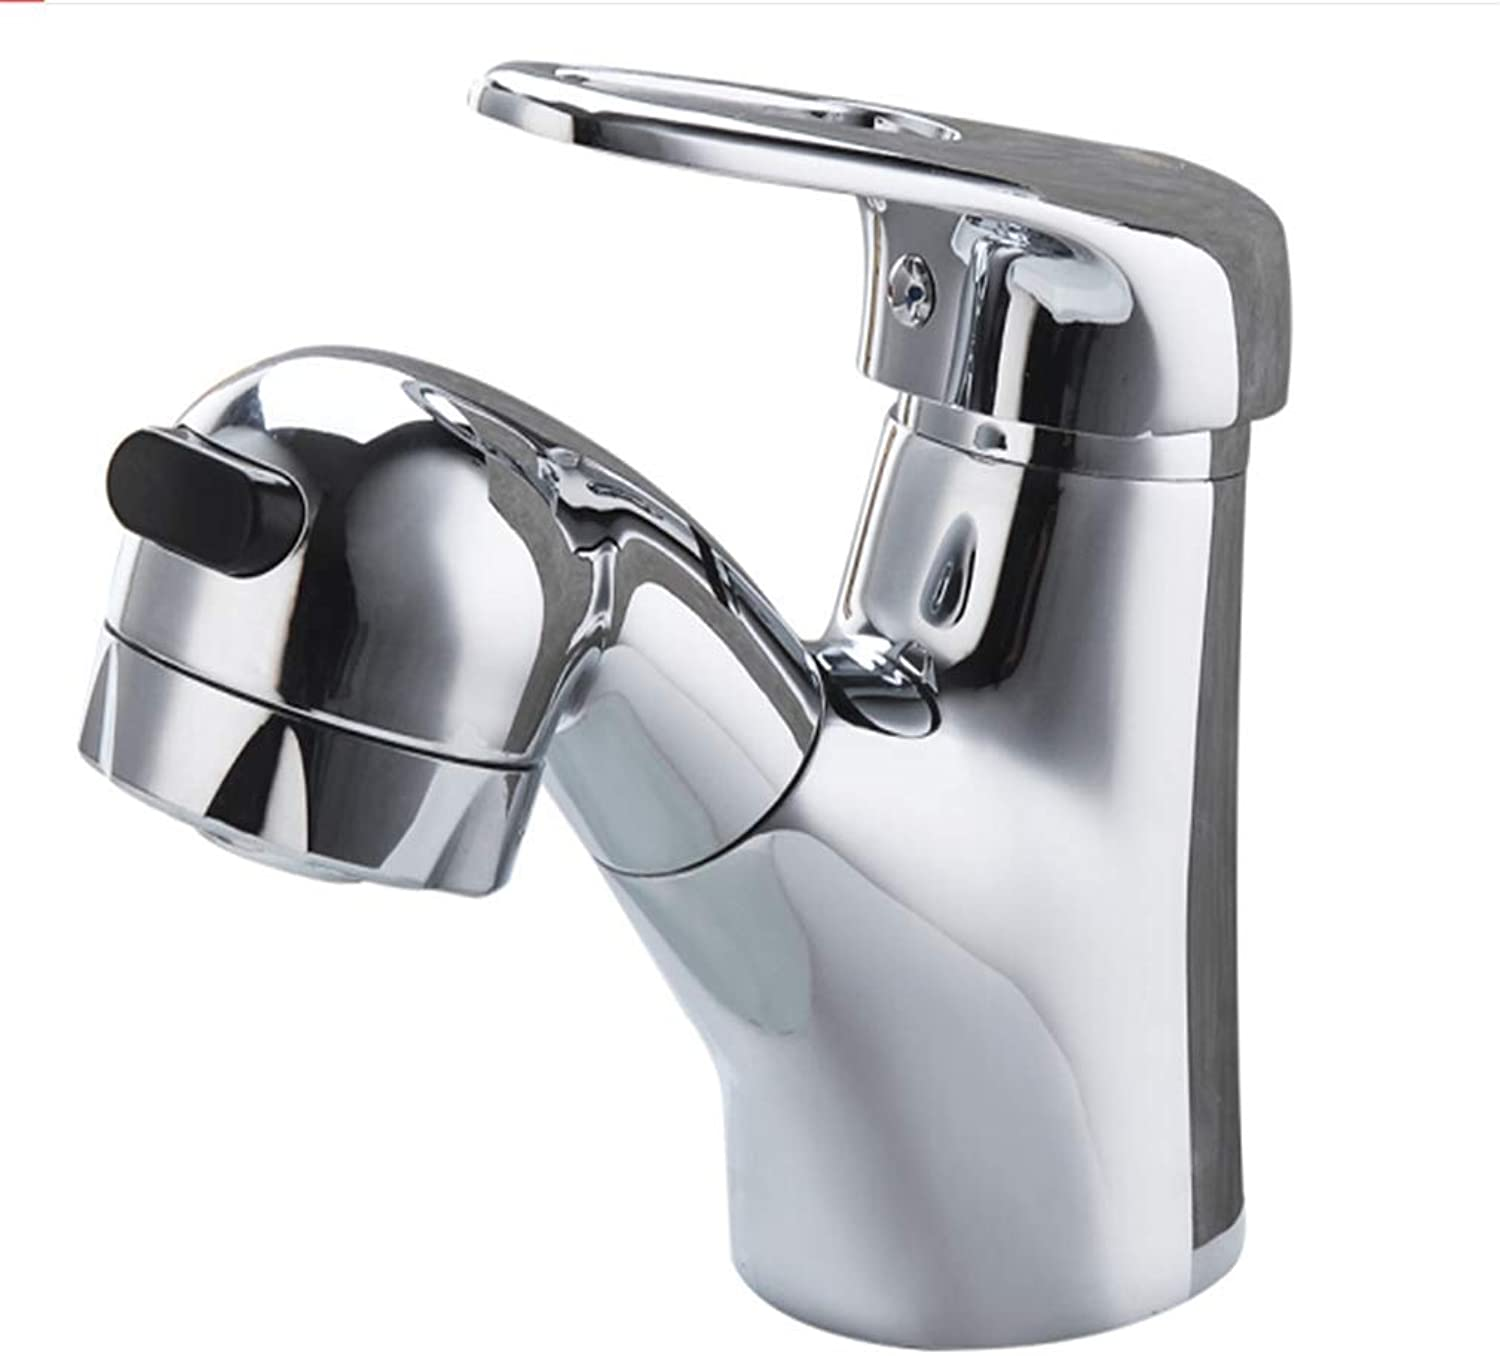 Kitchen Taps Faucet Modern Kitchen Sink Taps Stainless Steelcopper Draw Faucet Washing Basin Cold and Hot Facebasin Faucet Flower Sprinkler